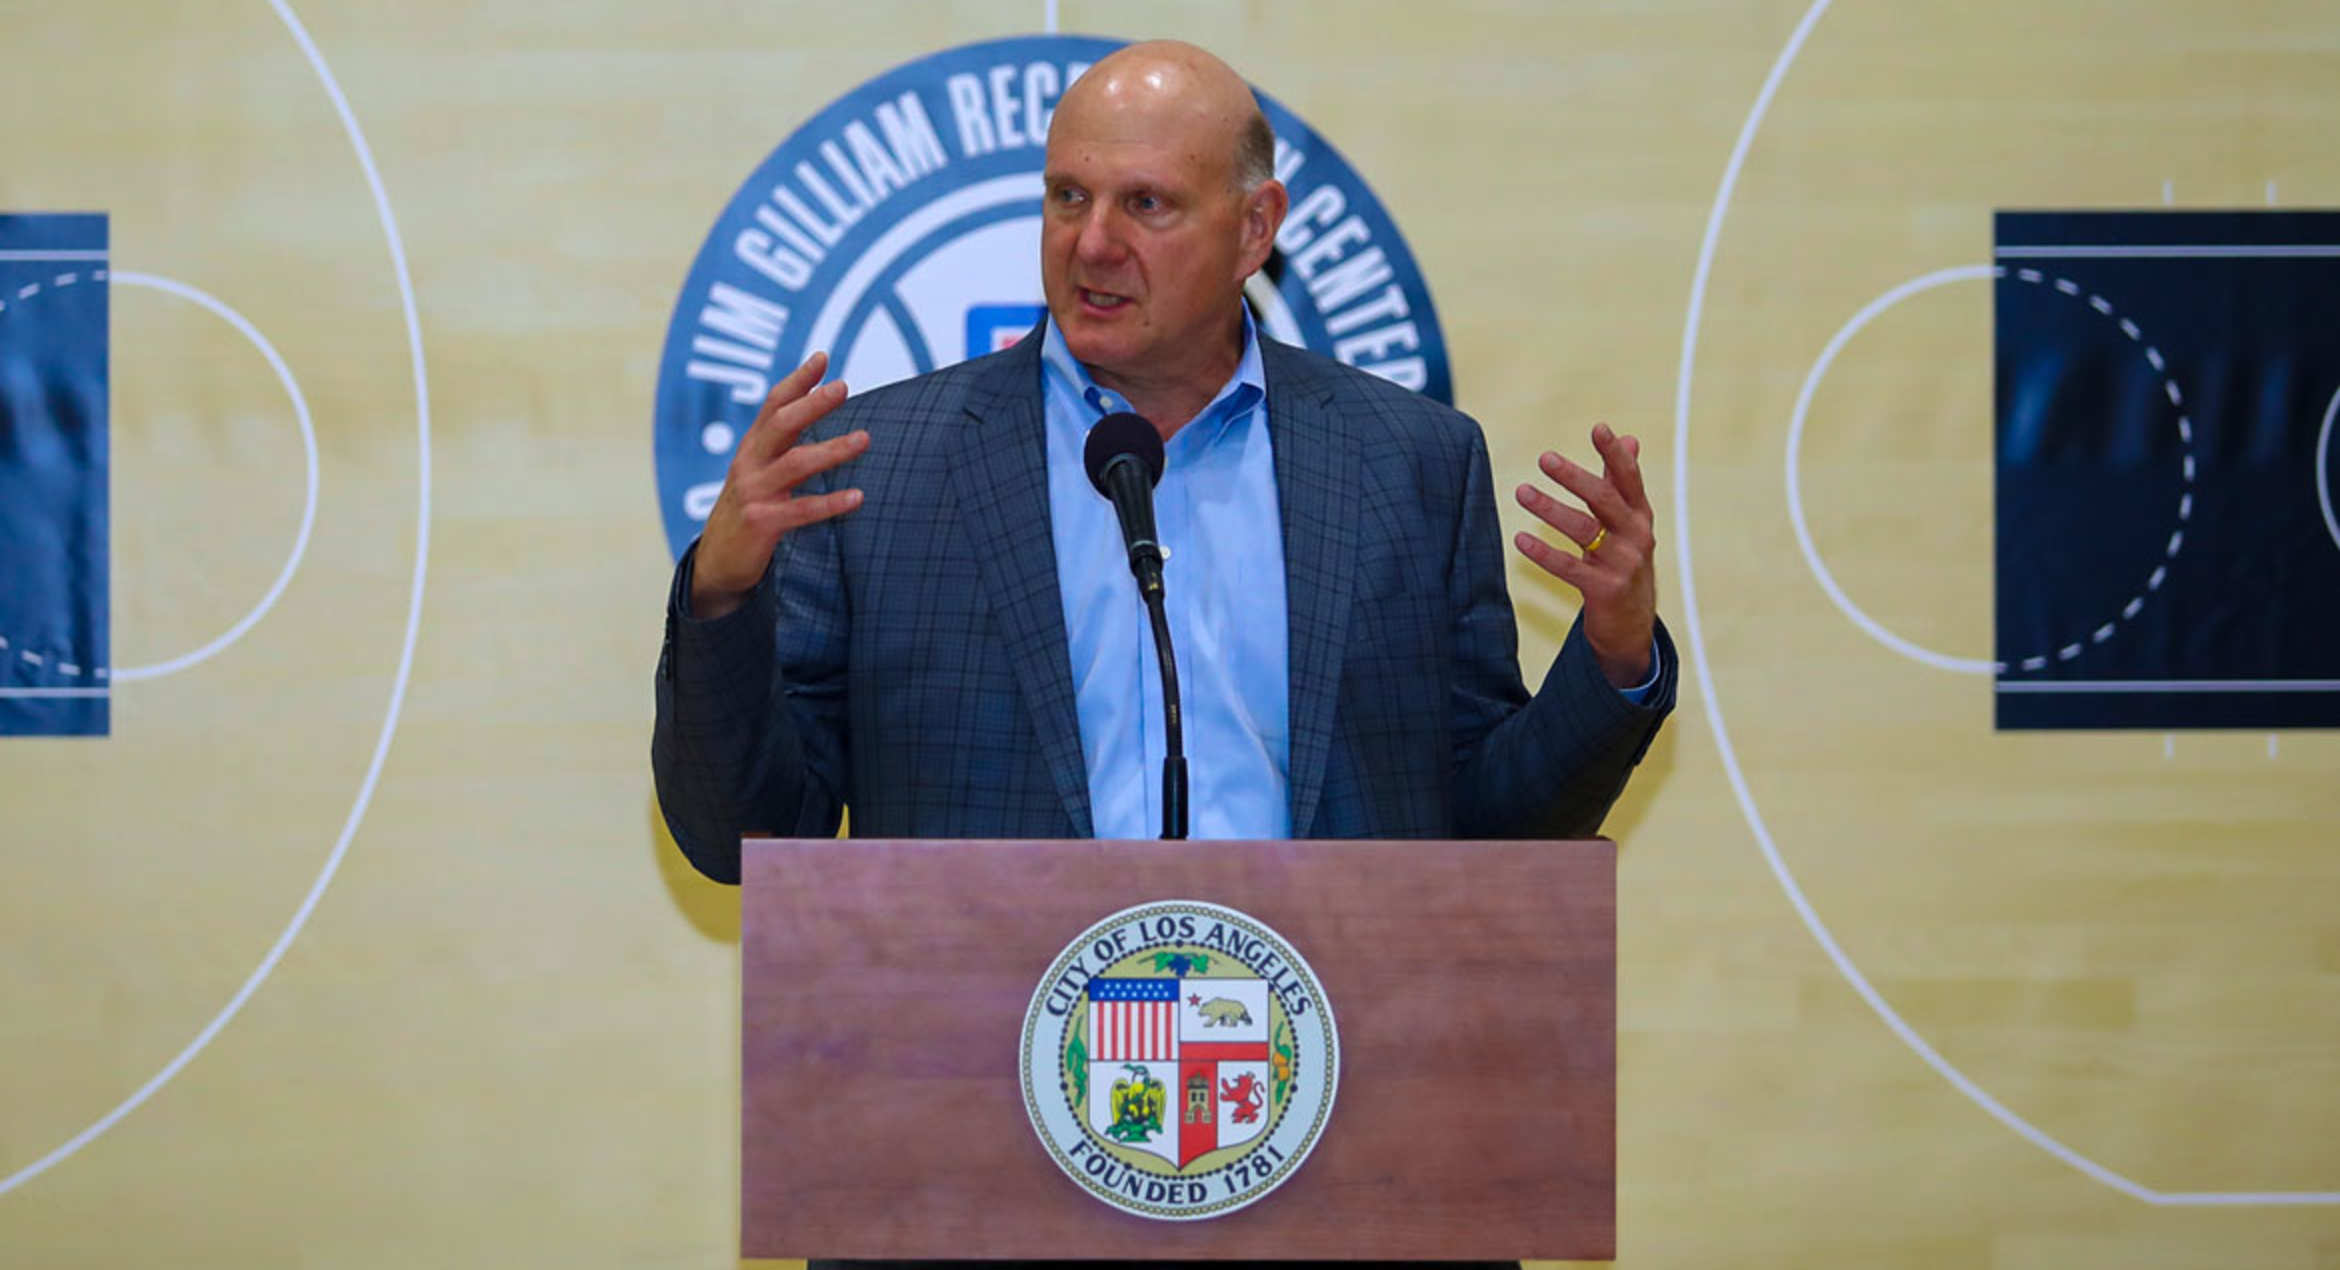 Ballmers and Clippers make major gift to renovate basketball courts across L.A.